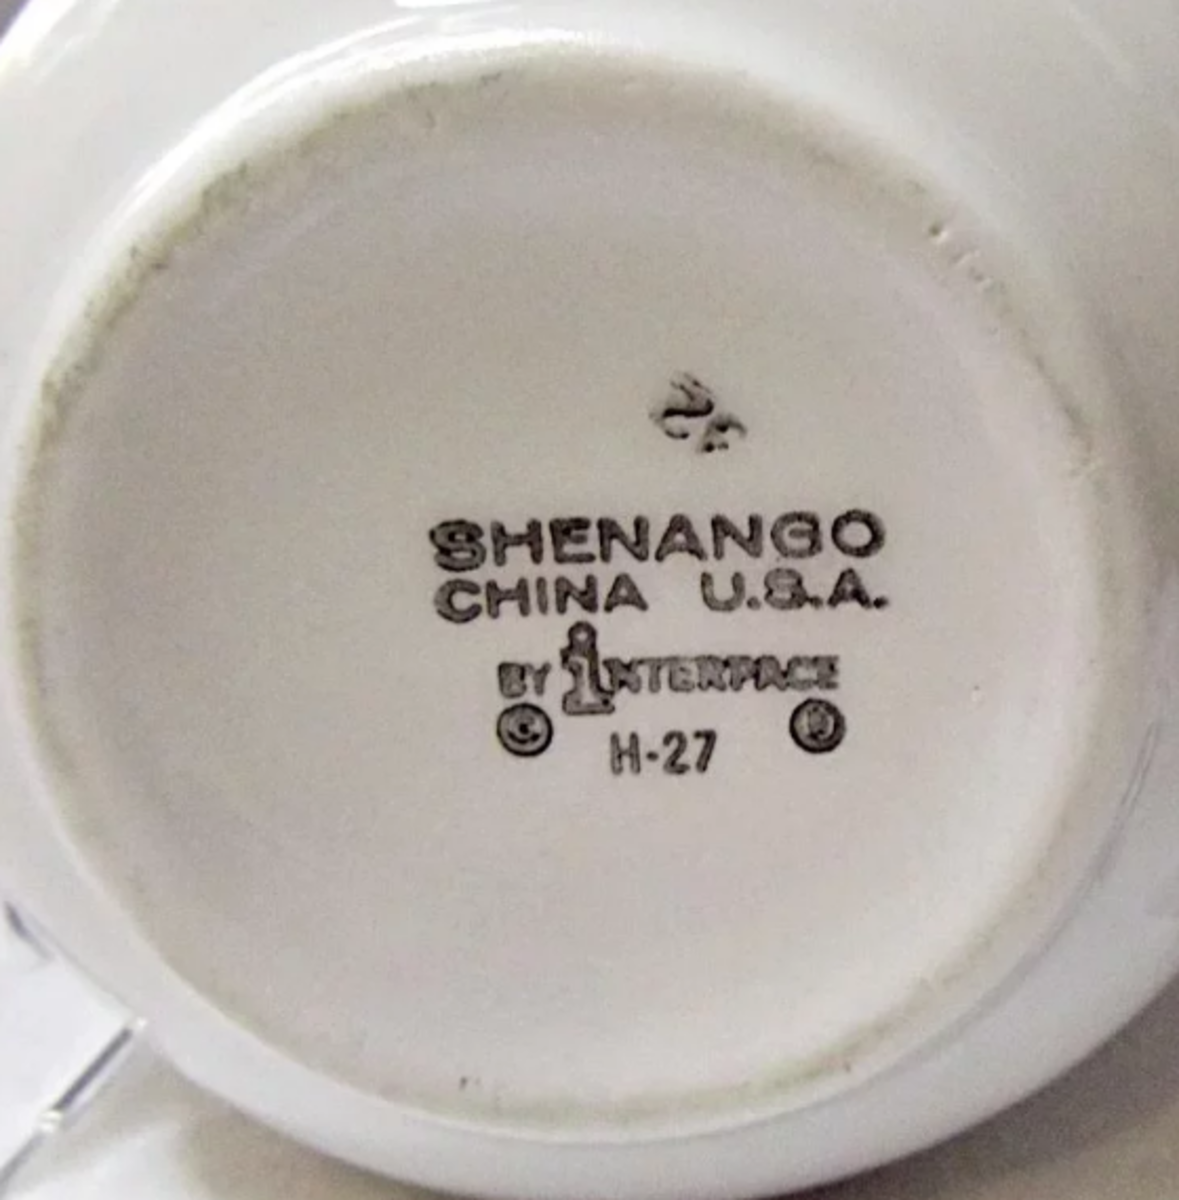 The date code of H-27 on the bottom of the cream pitcher above indicates that it was made during the last six months of 1969.